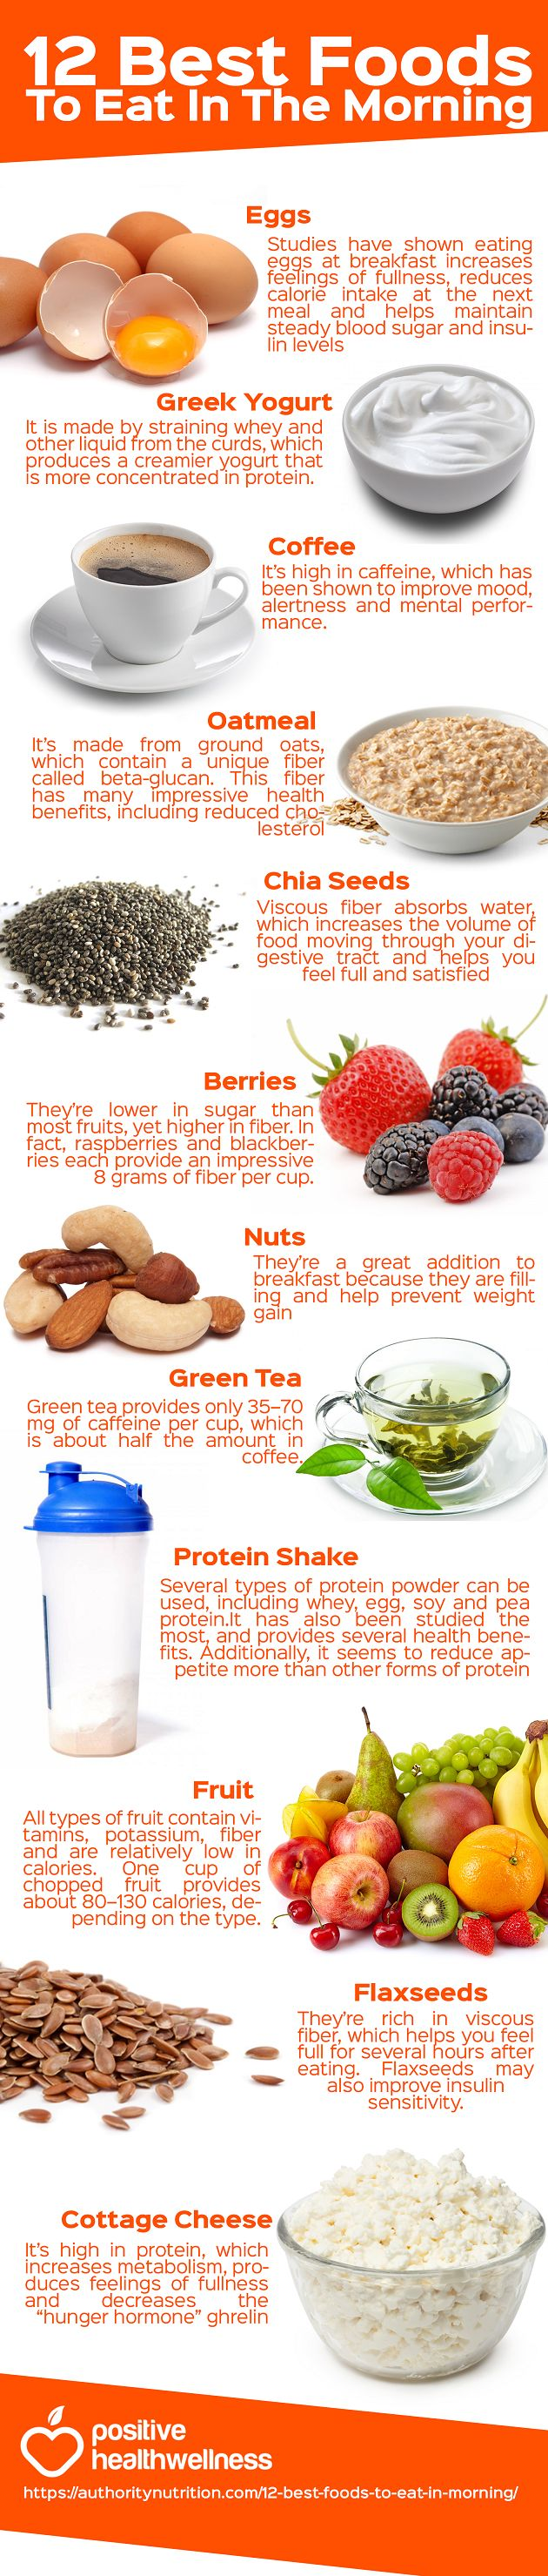 Share this Image On Your Site<p><strong>Please include attribution to Positive Health Wellness with this graphic.</strong><br /><br /><a href='http://www.positivehealthwellness.stfi.re/infographics/12-best-foods-eat-morning-infographic/'><img src='http://www.positivehealthwellness.stfi.re/wp-content/uploads/2016/08/bestfood.png' alt='12 Best Foods To Eat In The Morning' width='540px' border='0' /></a></p>